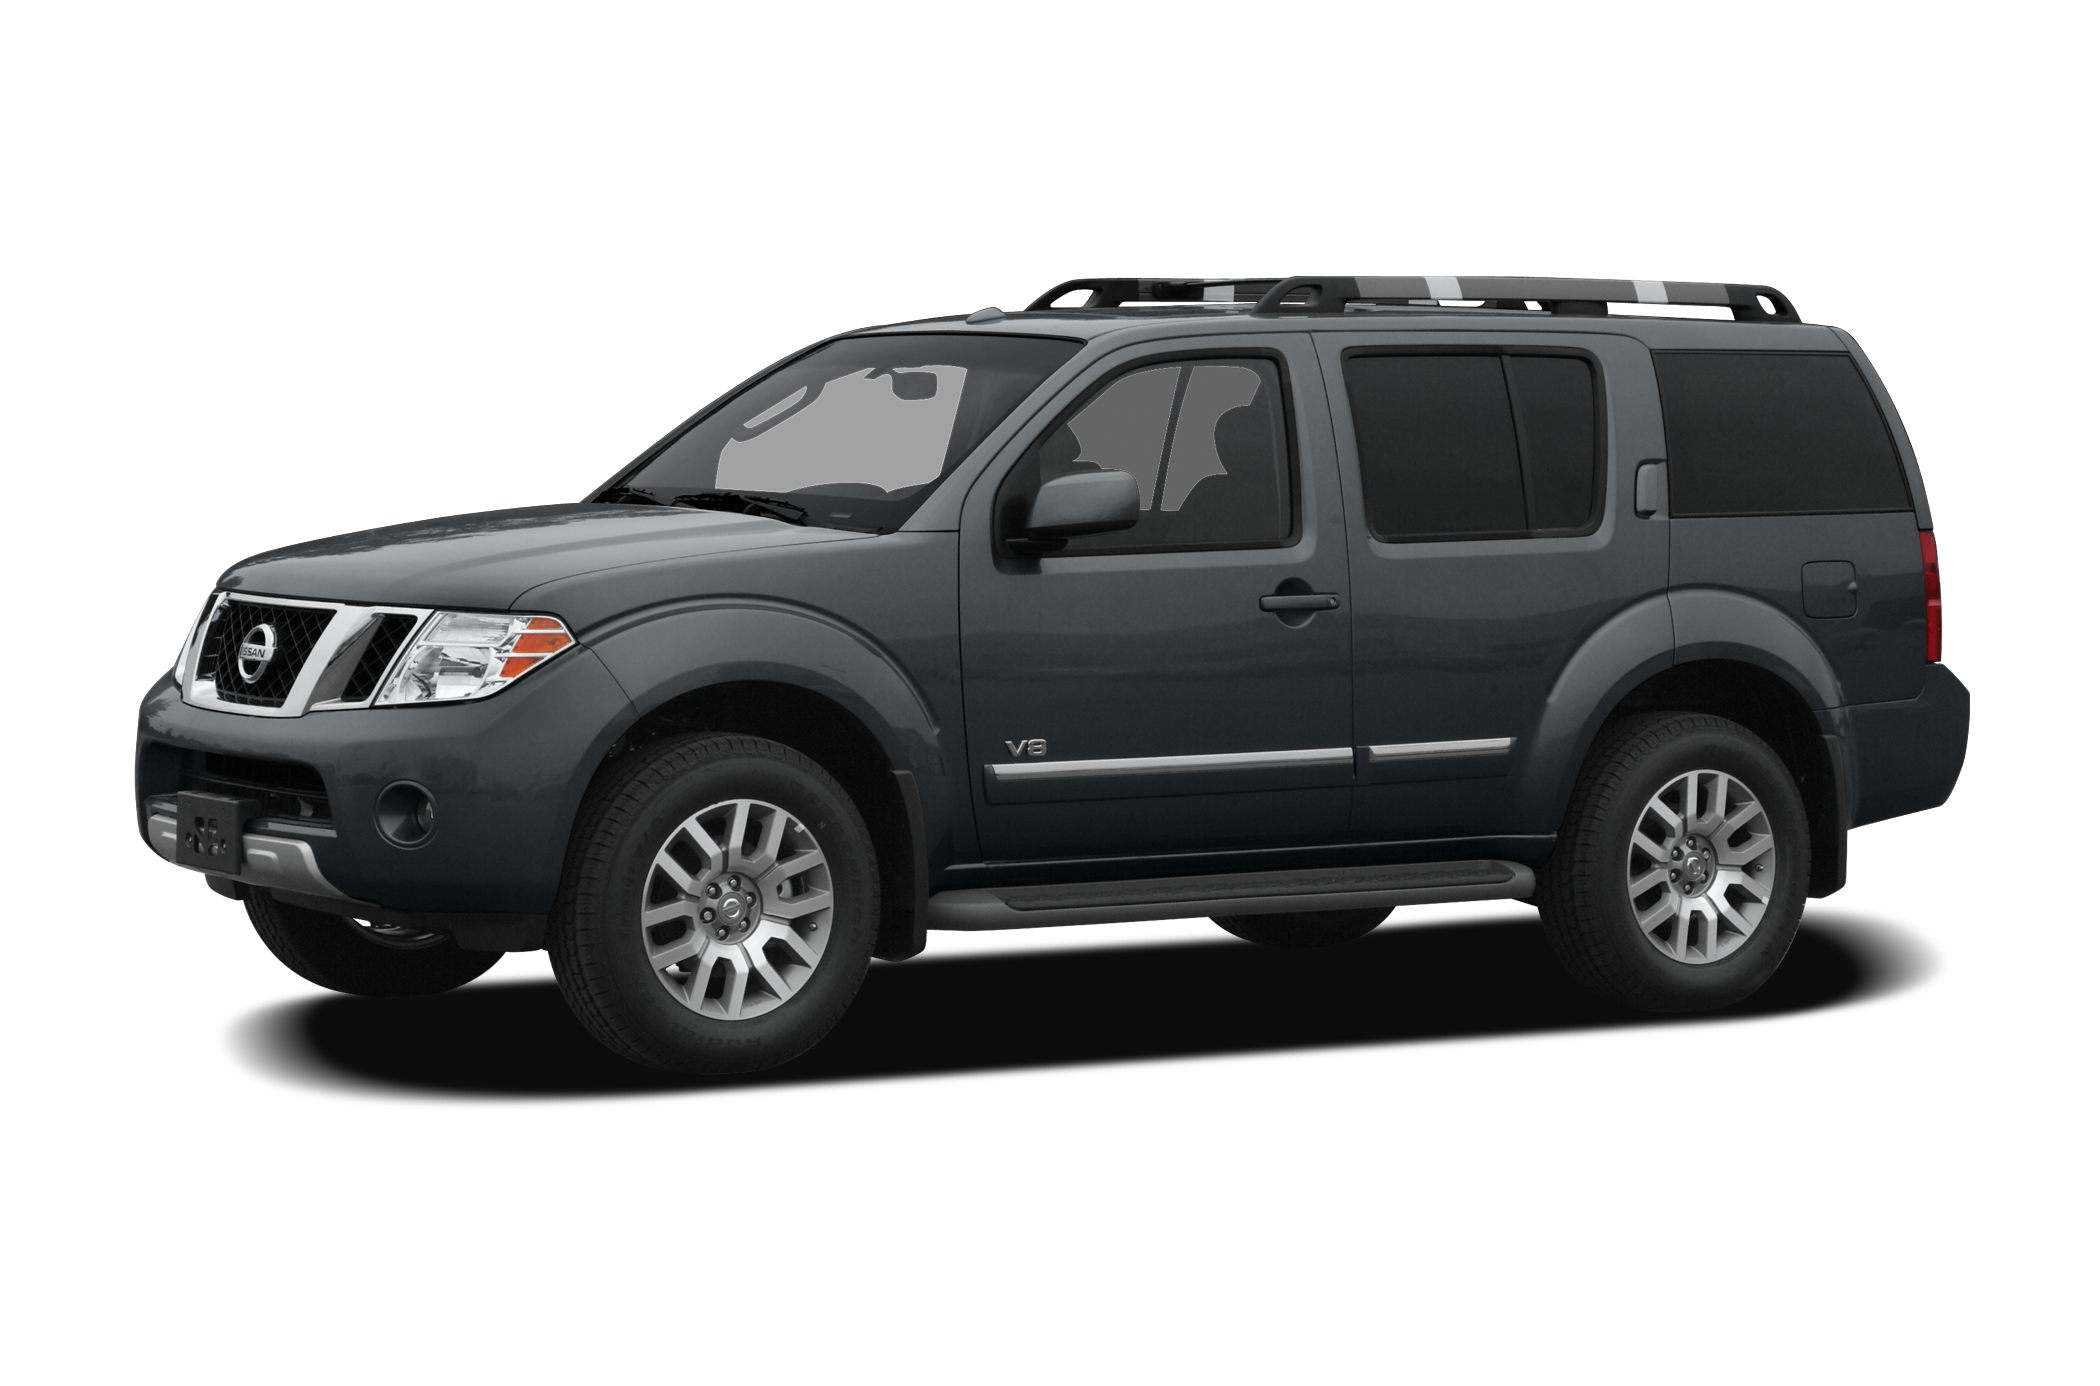 2008 Nissan Pathfinder SE SUV for sale in Kent for $15,244 with 77,548 miles